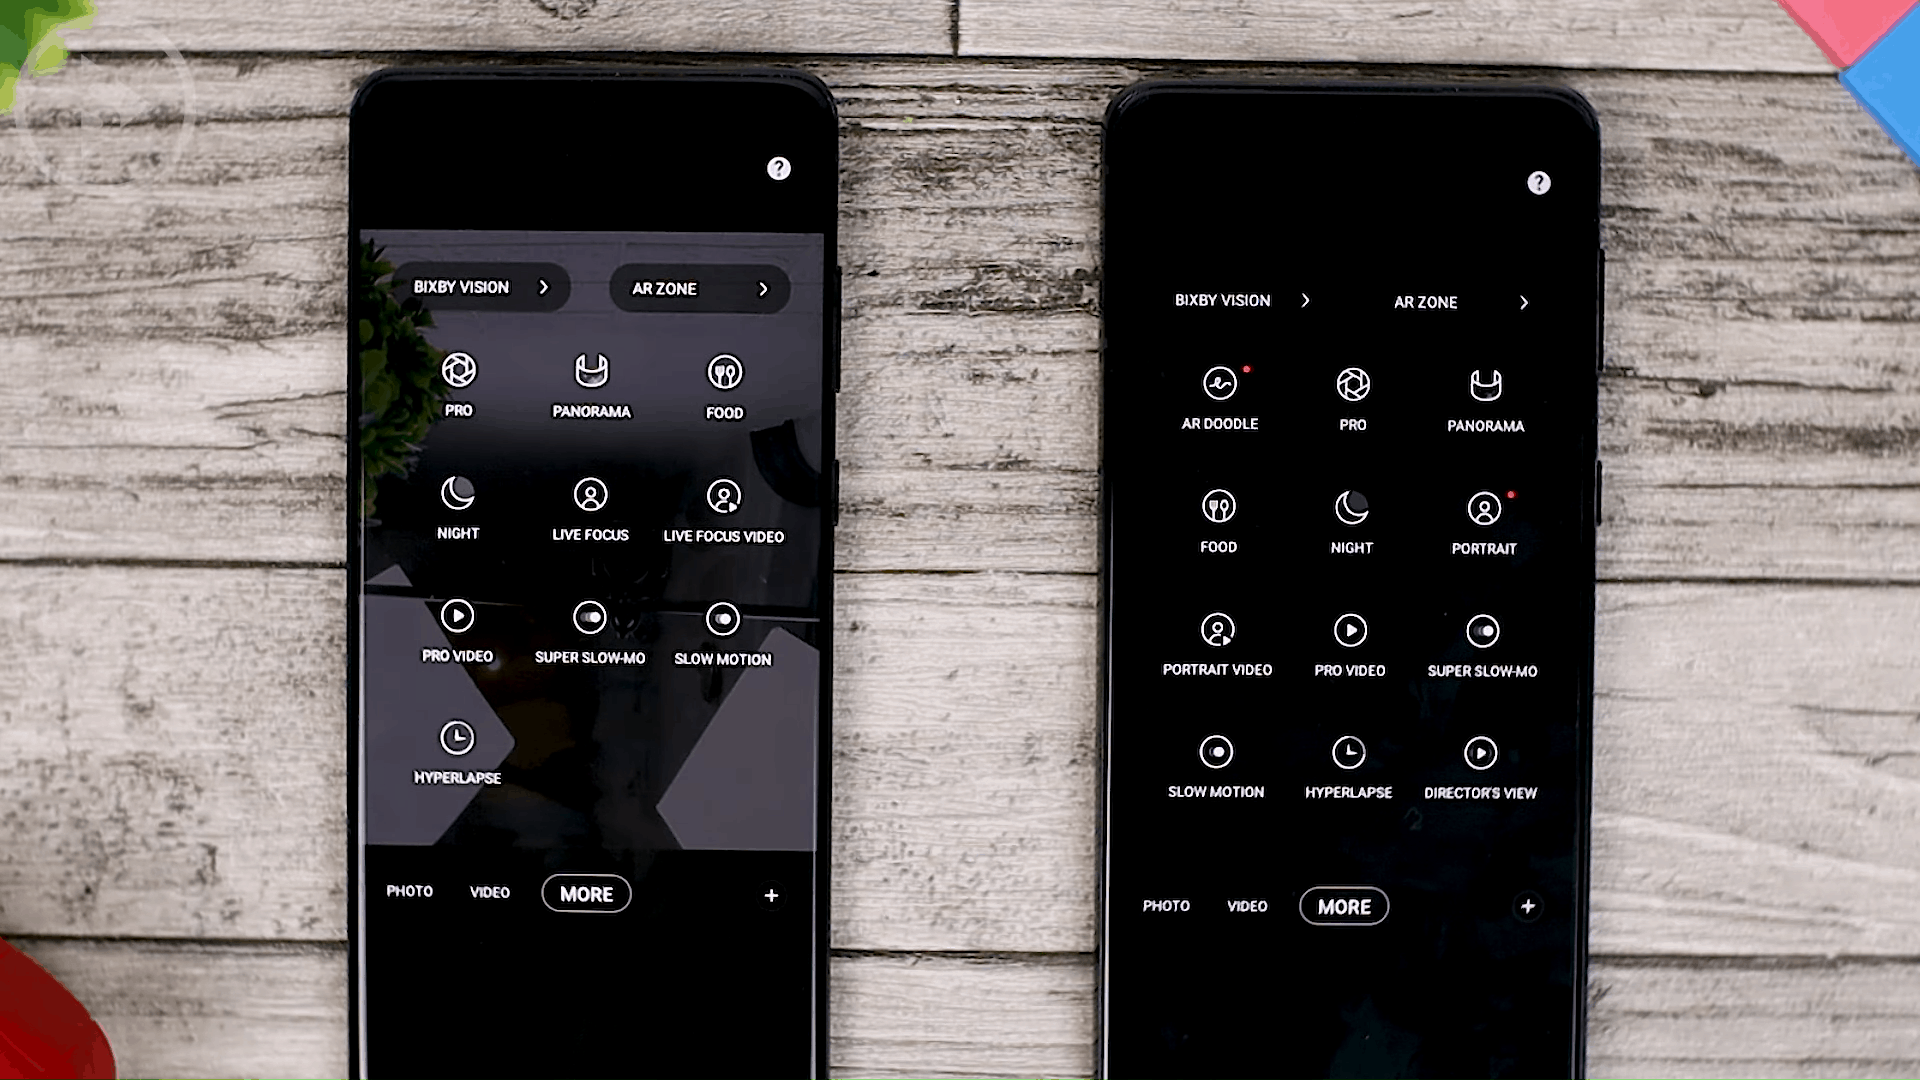 Live Focus - Check out the latest One UI 3.1 features on the Samsung S21 + that are not yet available on One UI 3.0 Samsung S20 + (PART 2)